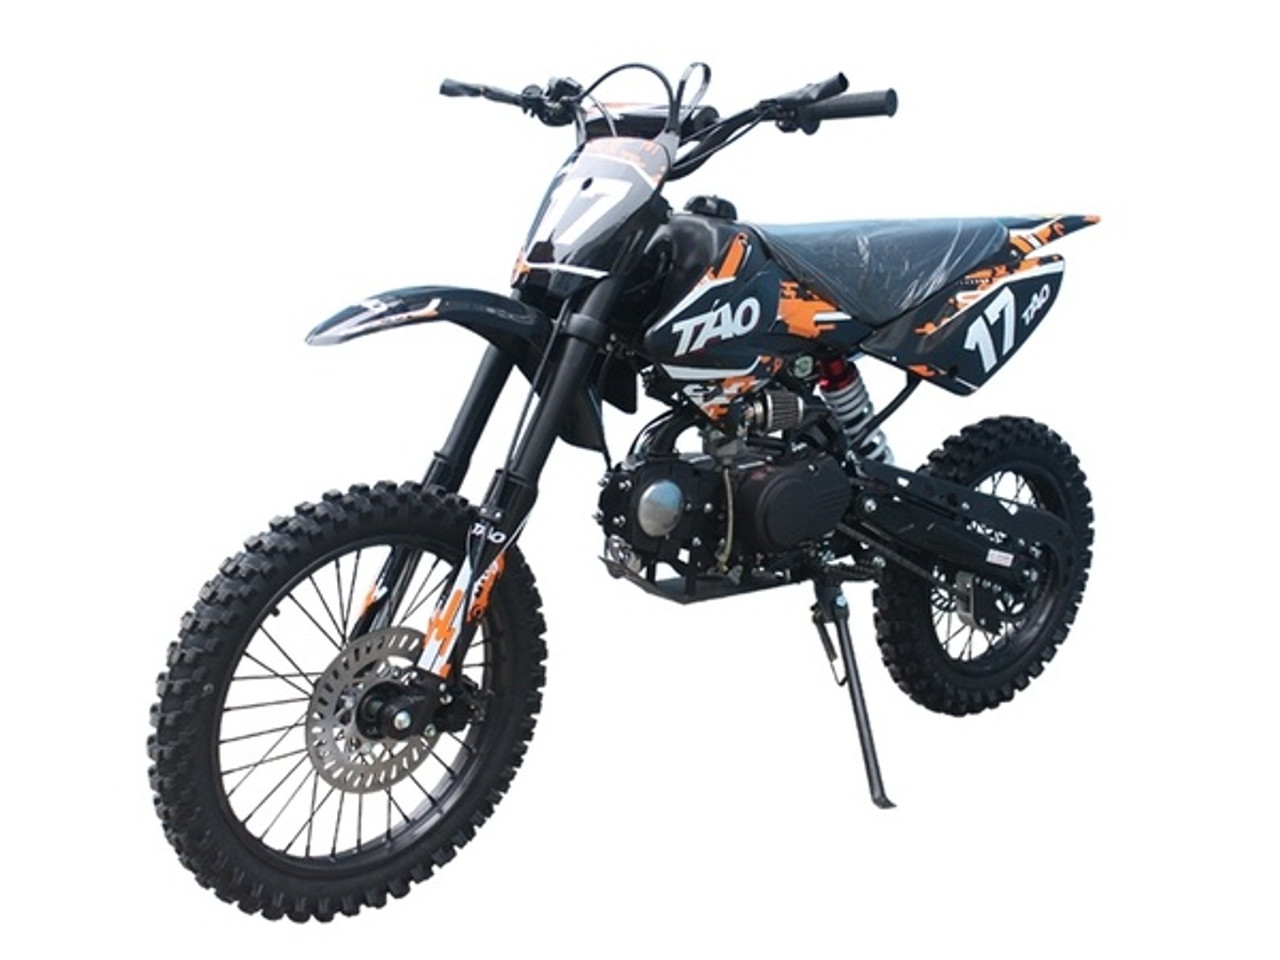 "Taotao High End Dirt Bike 17 125CC Big With 17"" Tires, Air Cooled, 4-Stroke, 1-Cylinder - Fully Assembled And Tested"